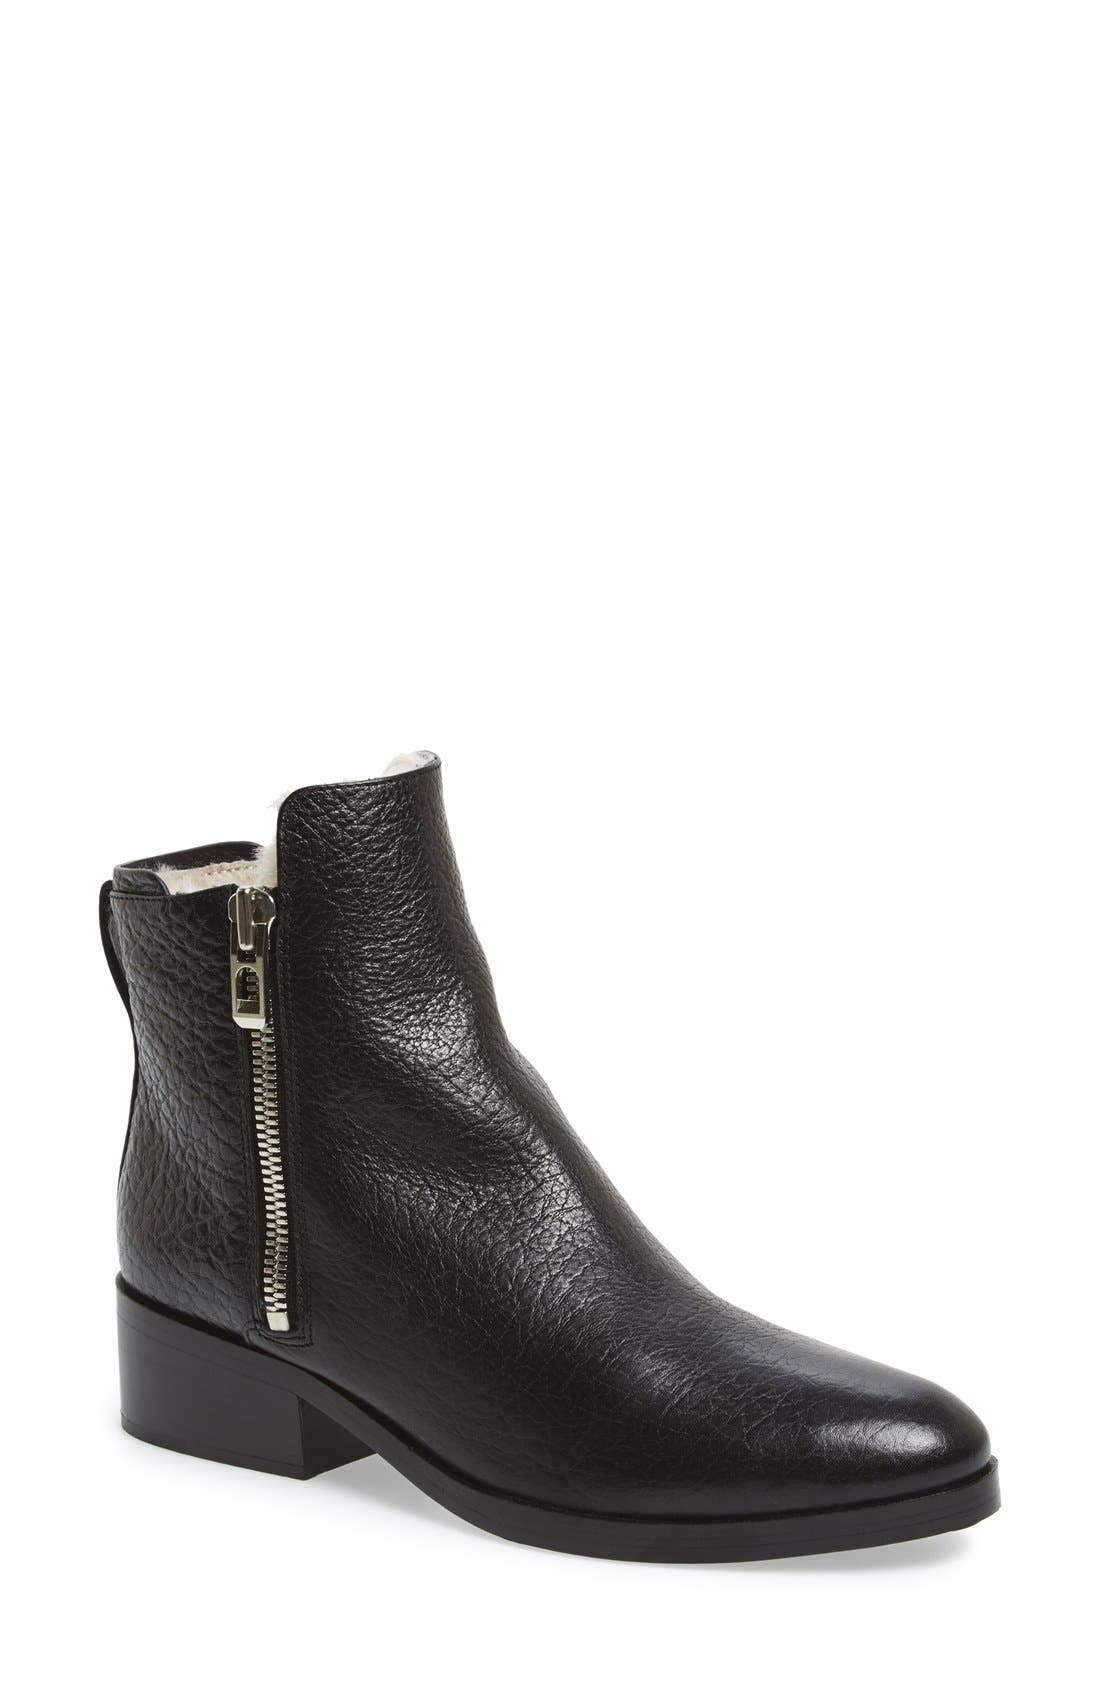 3.1 PHILLIP LIM 'Alexa' Shearling Lined Moto Boot